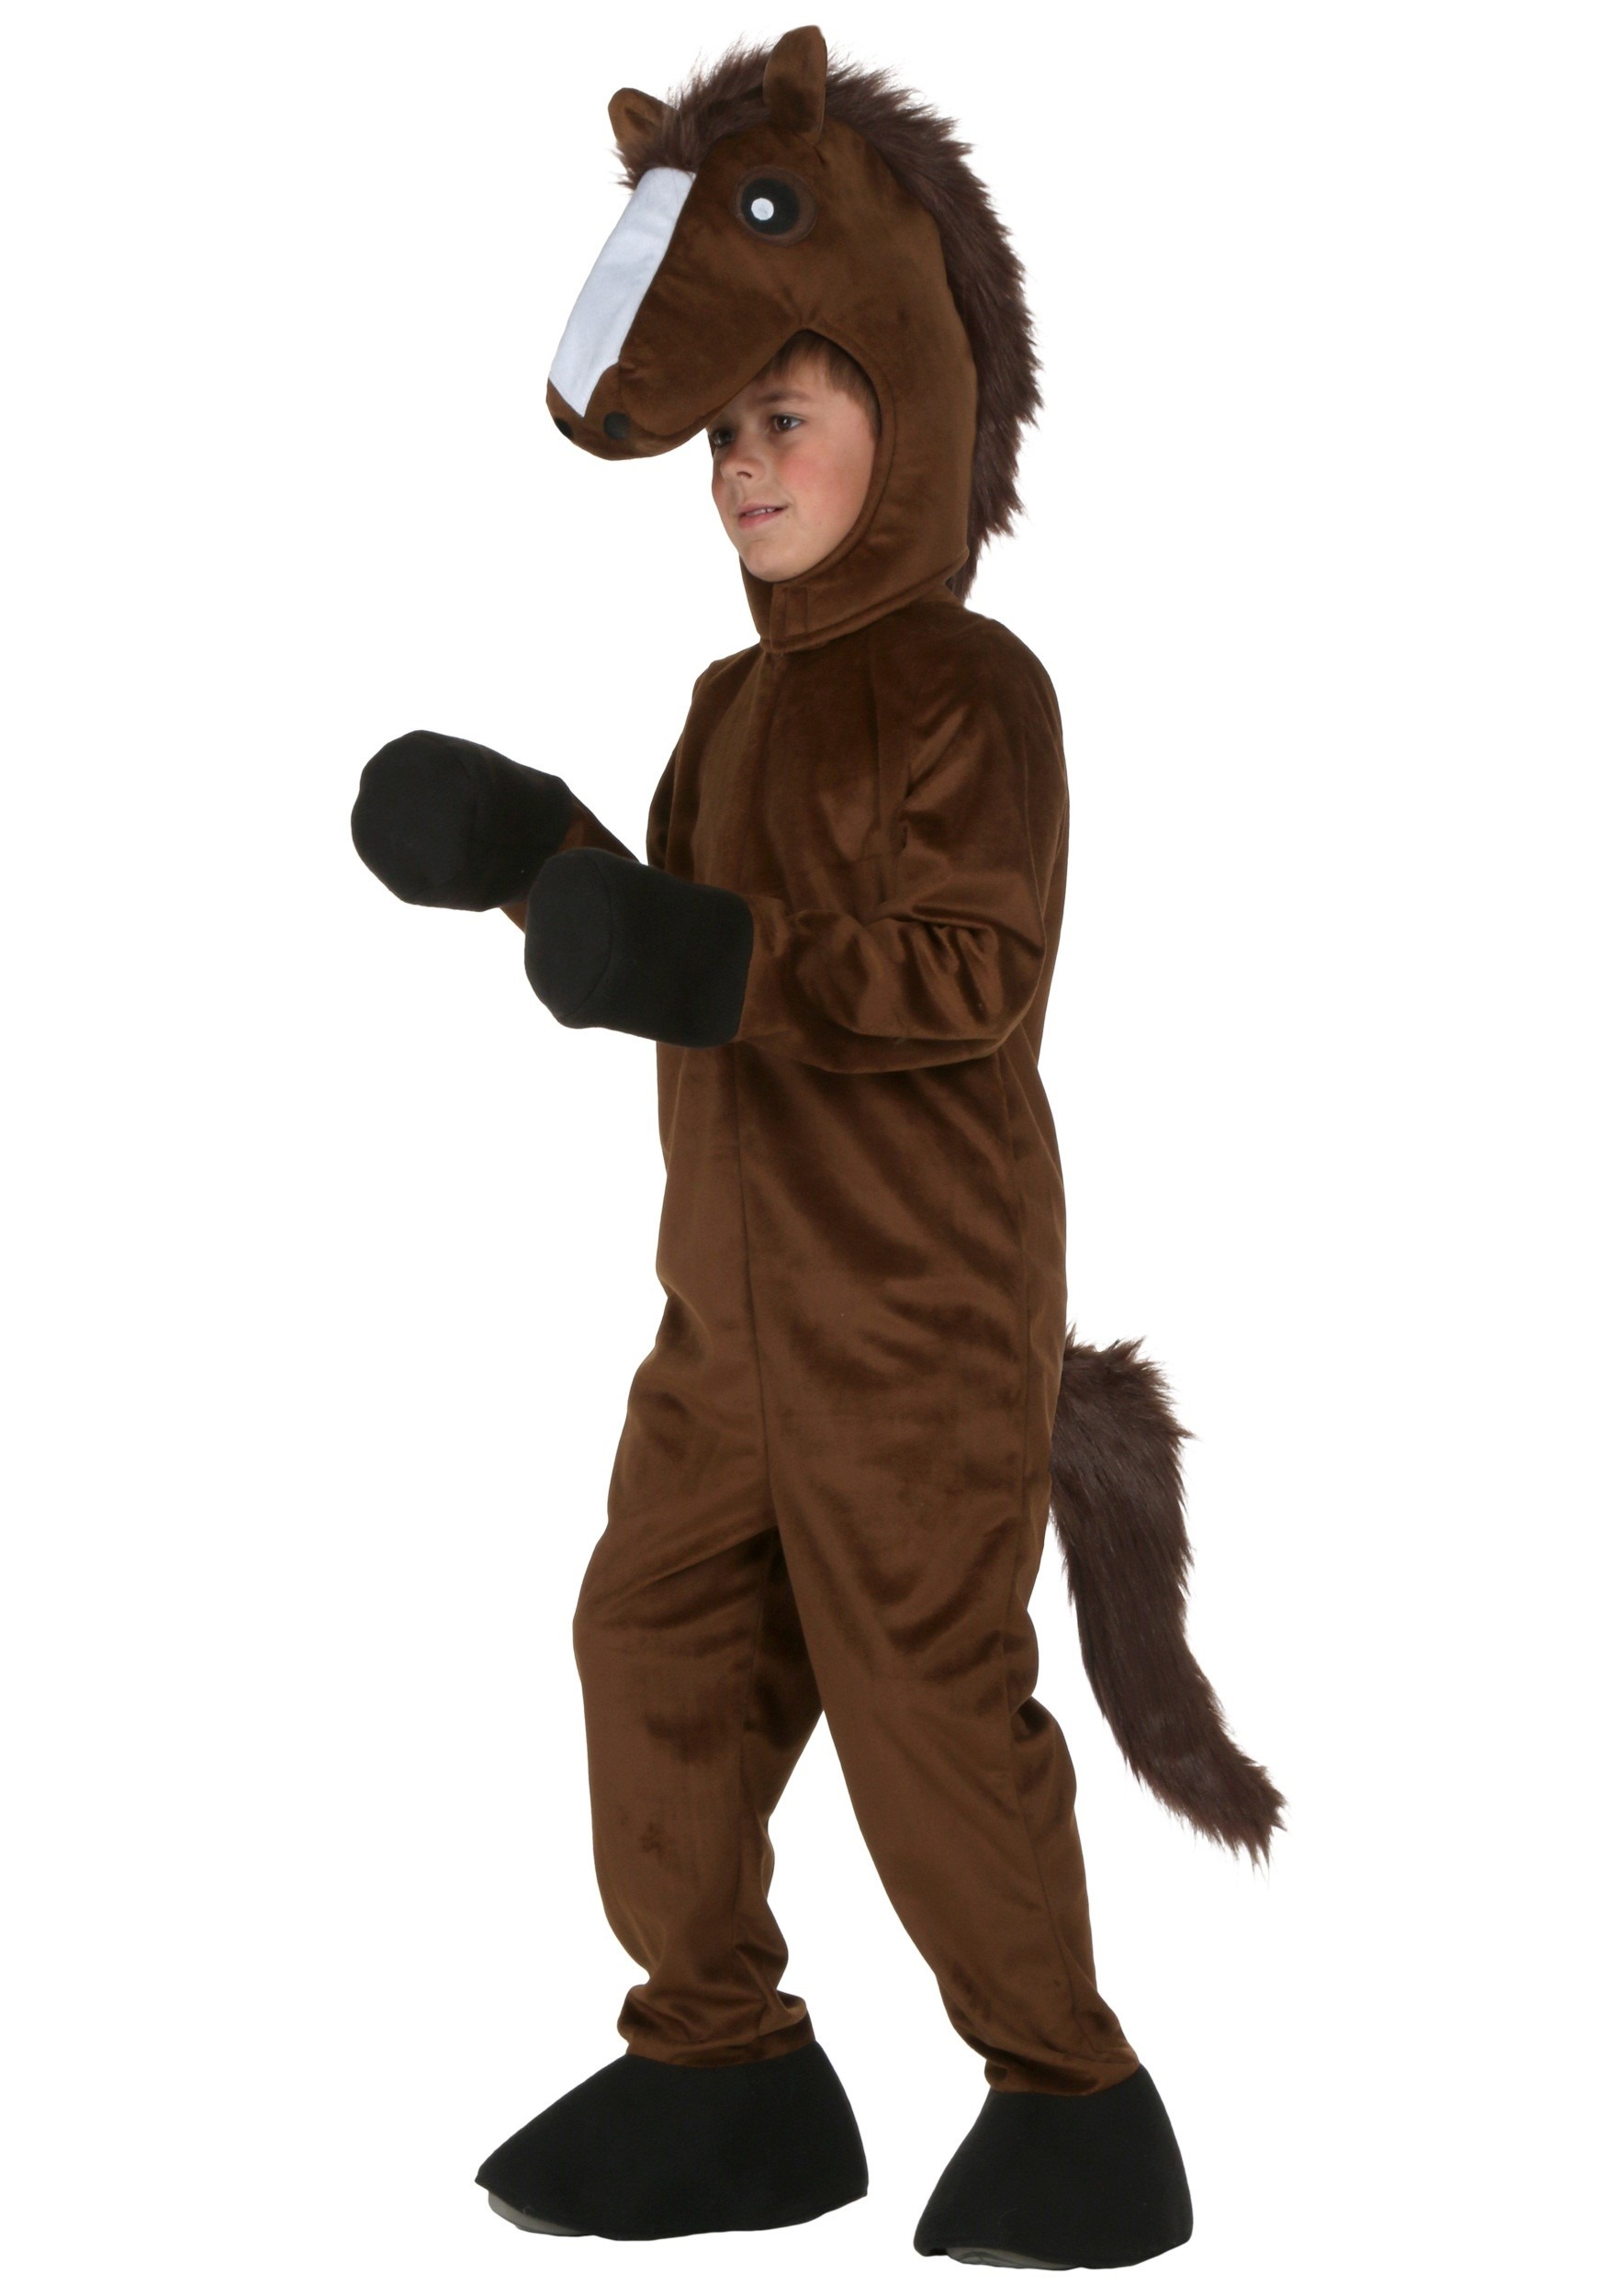 Kids Horse Costume W/ Full Suit | Exclusive | Made By Us